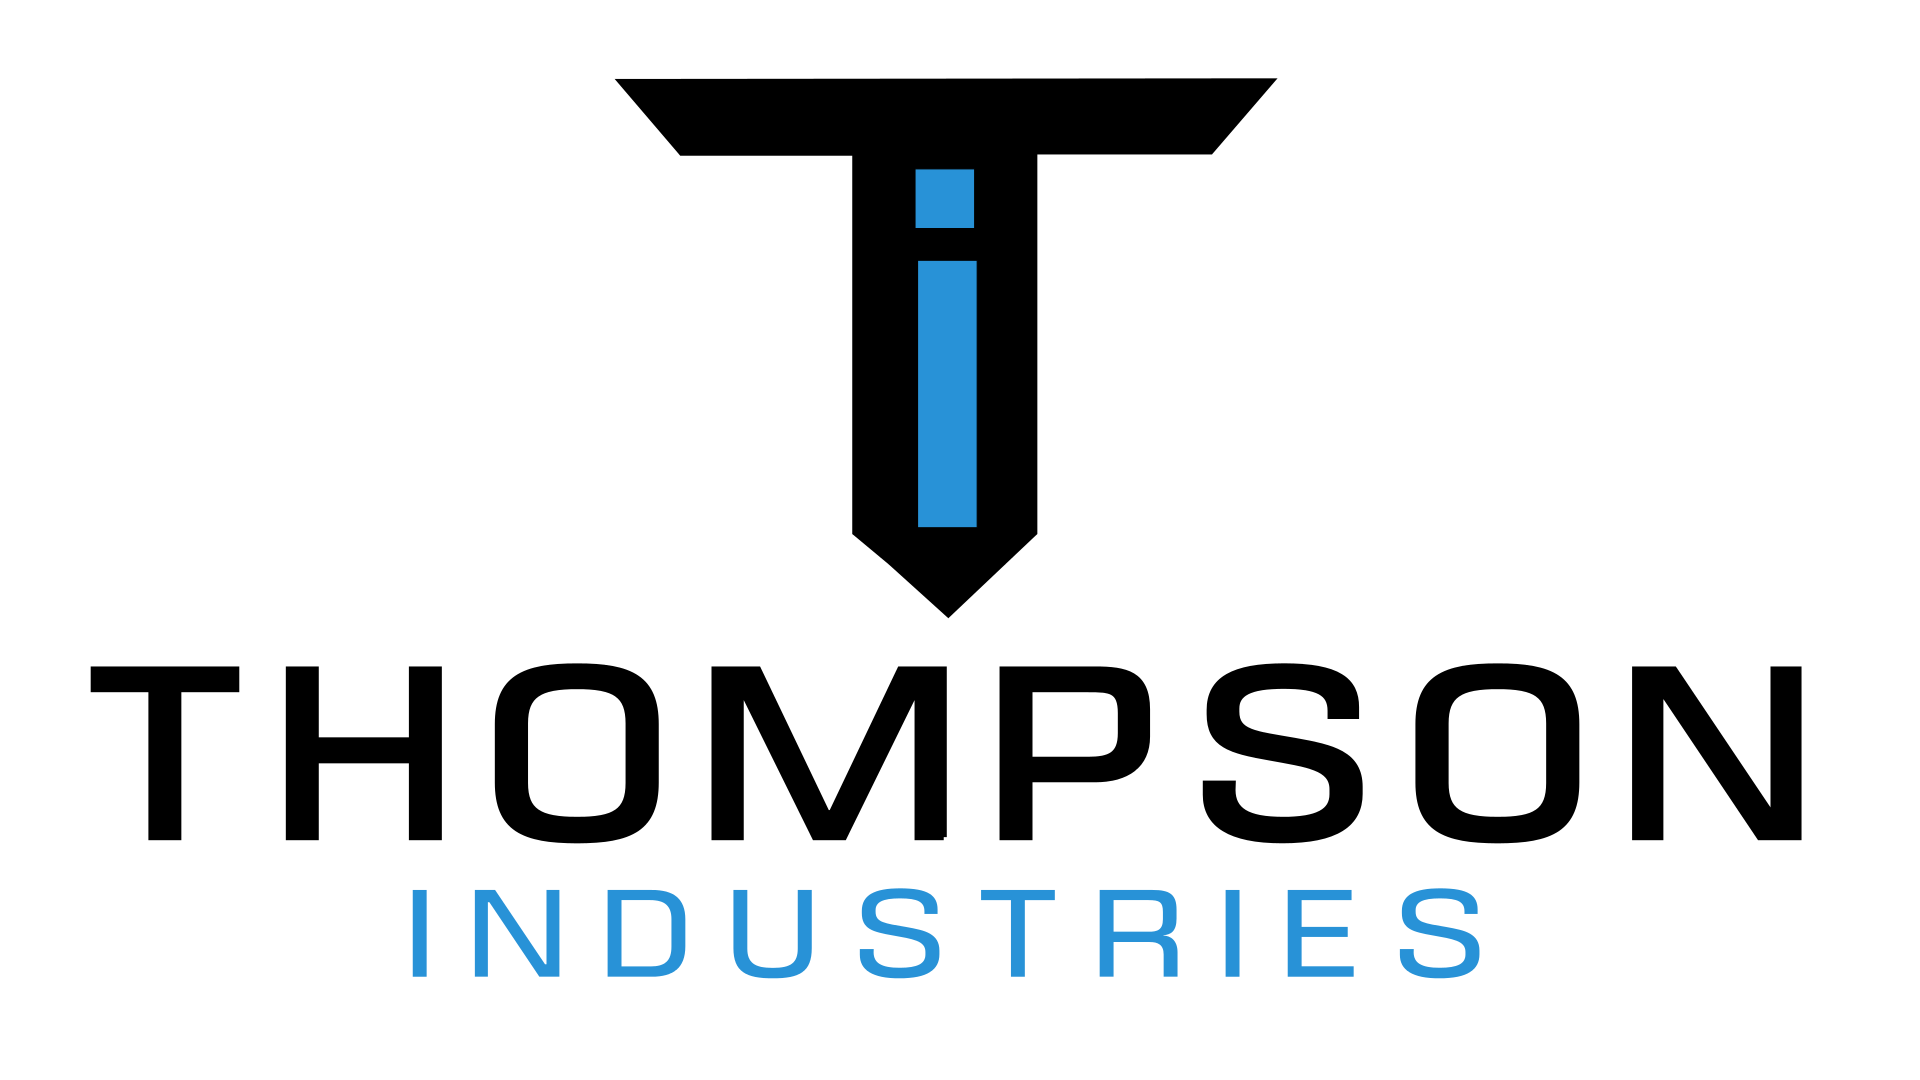 Thompson Industries